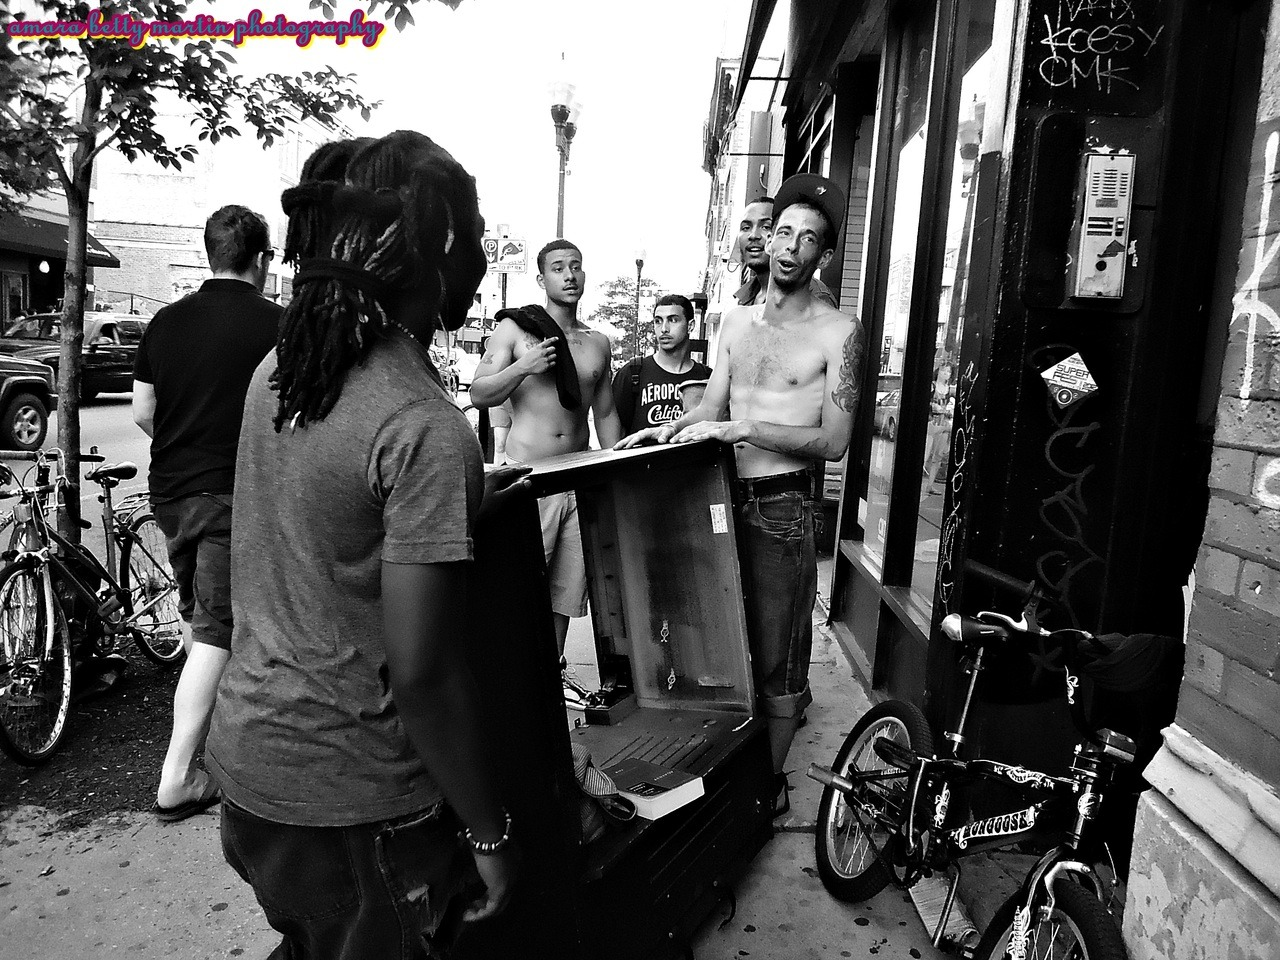 Wicker Park Encounters © amara betty martin photography